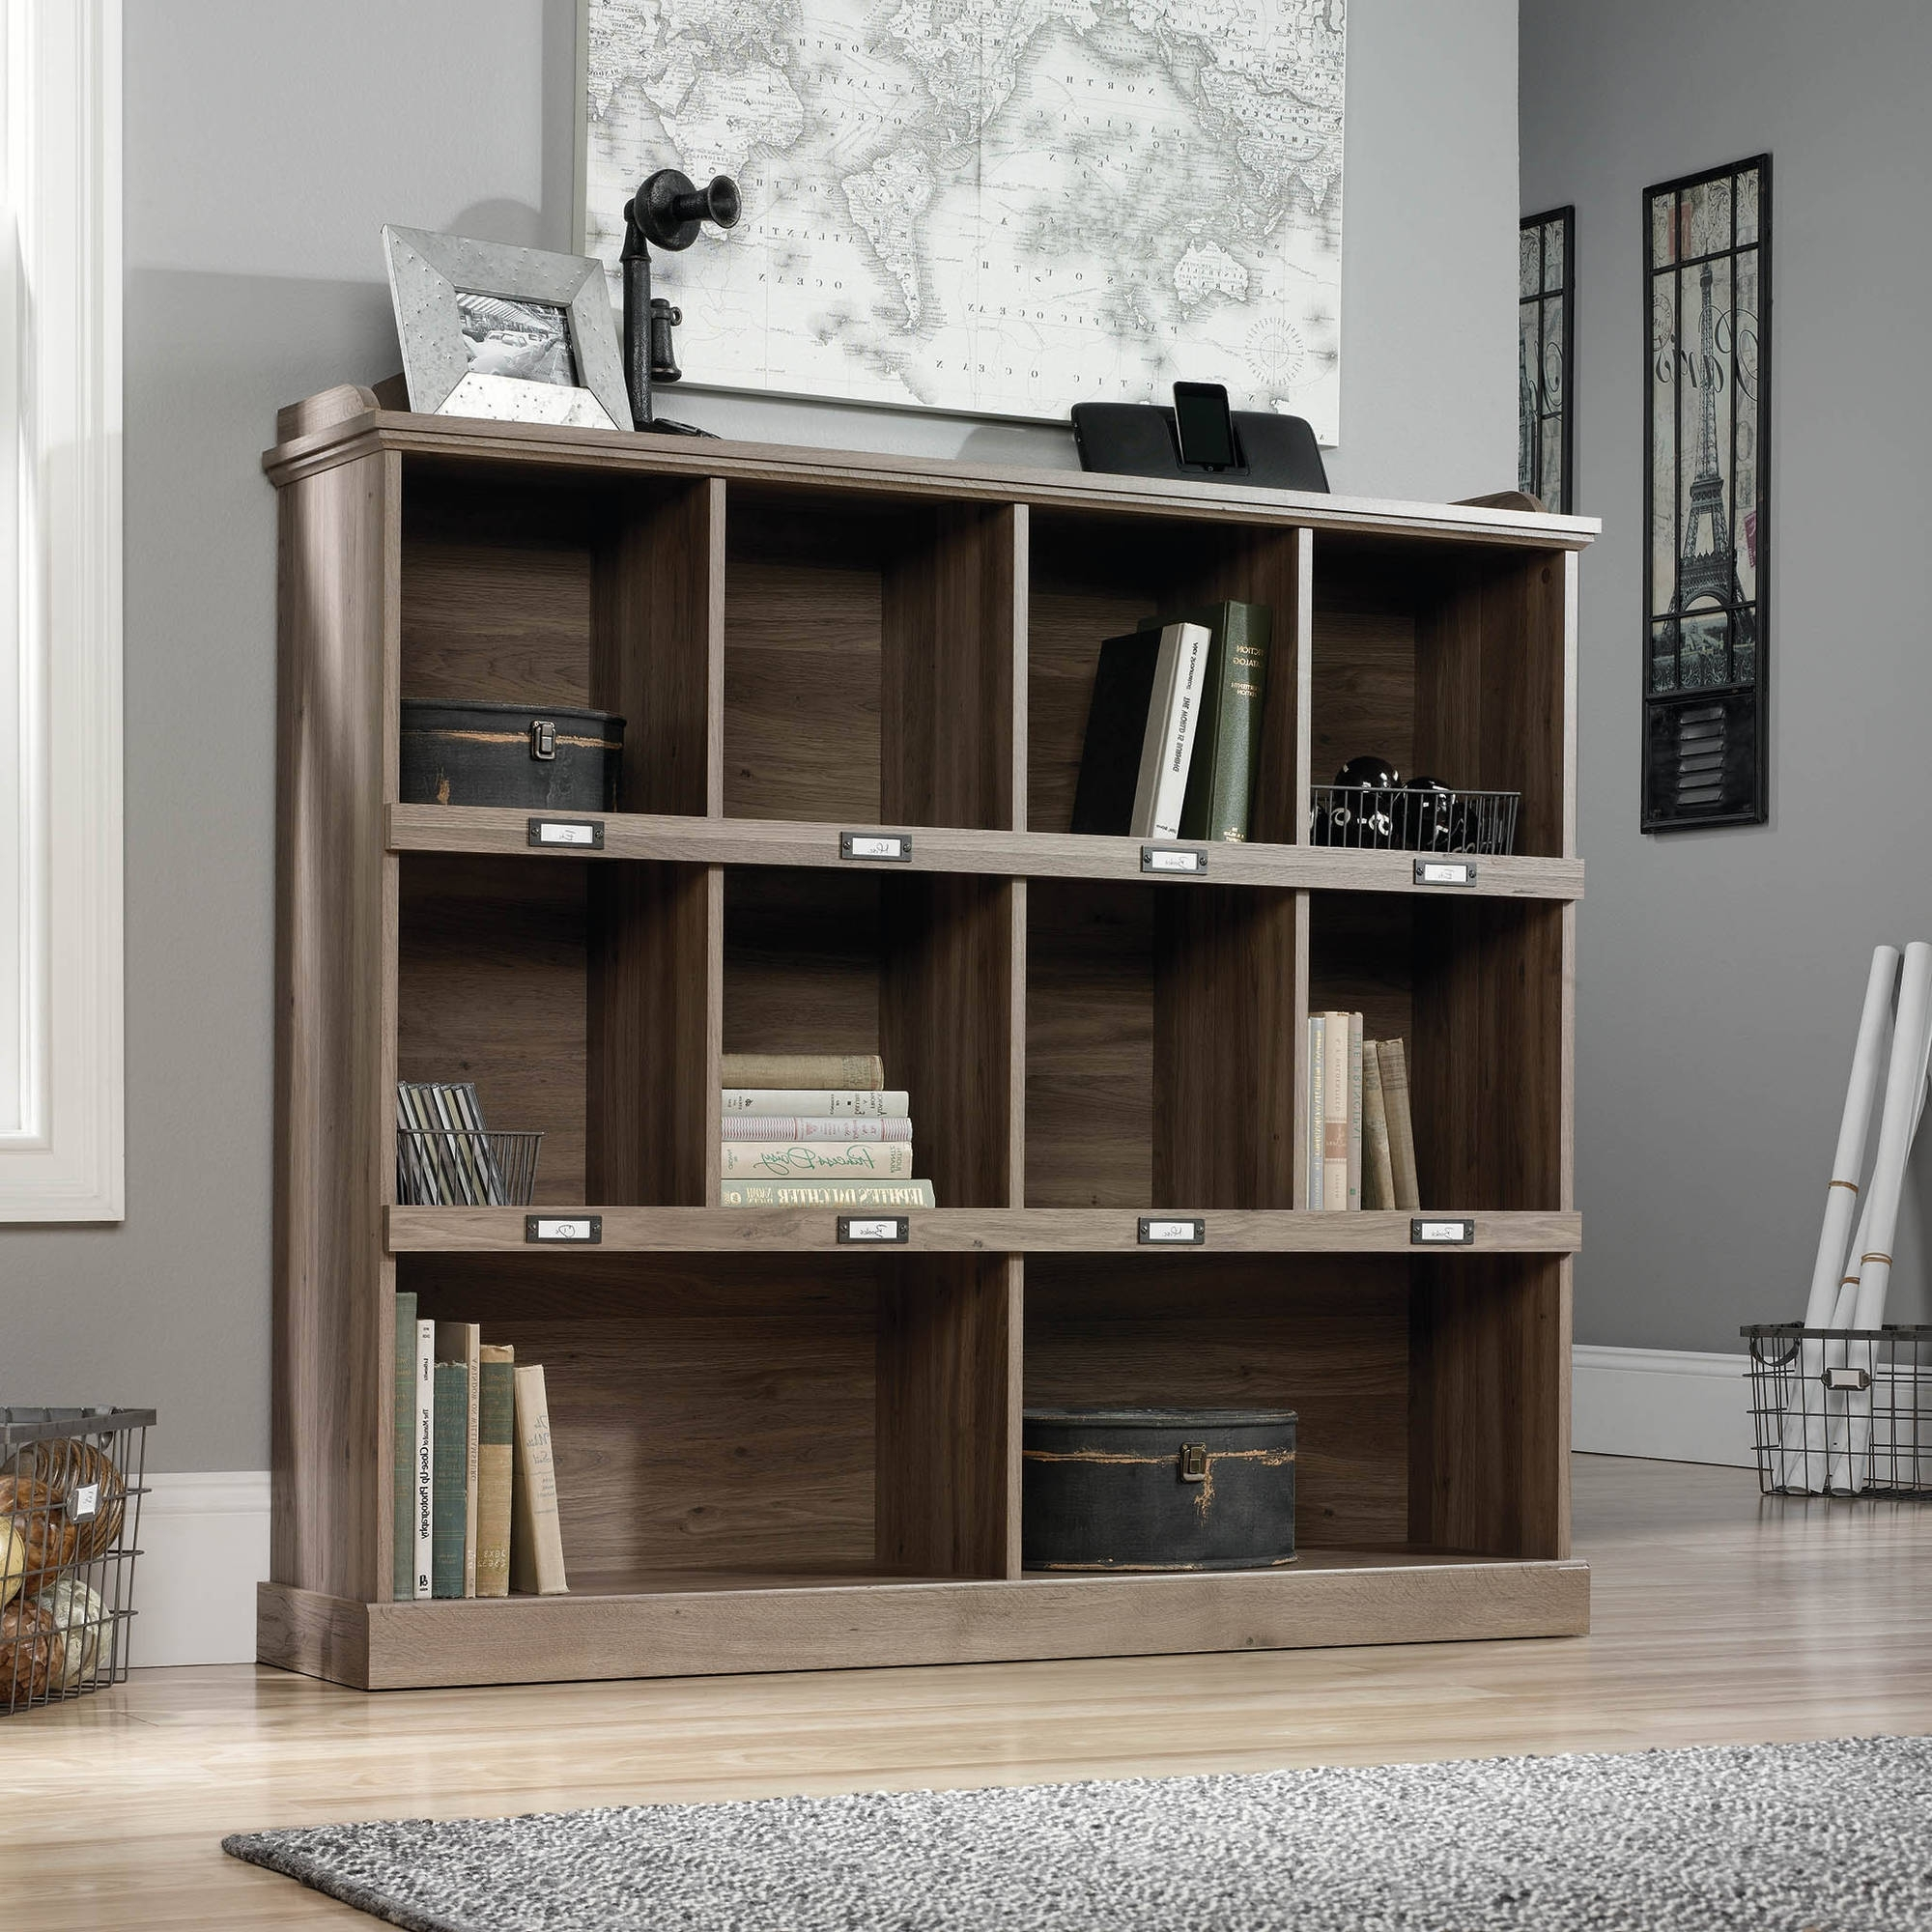 Trendy Bookcases – Walmart For Walmart Bookcases (View 12 of 15)